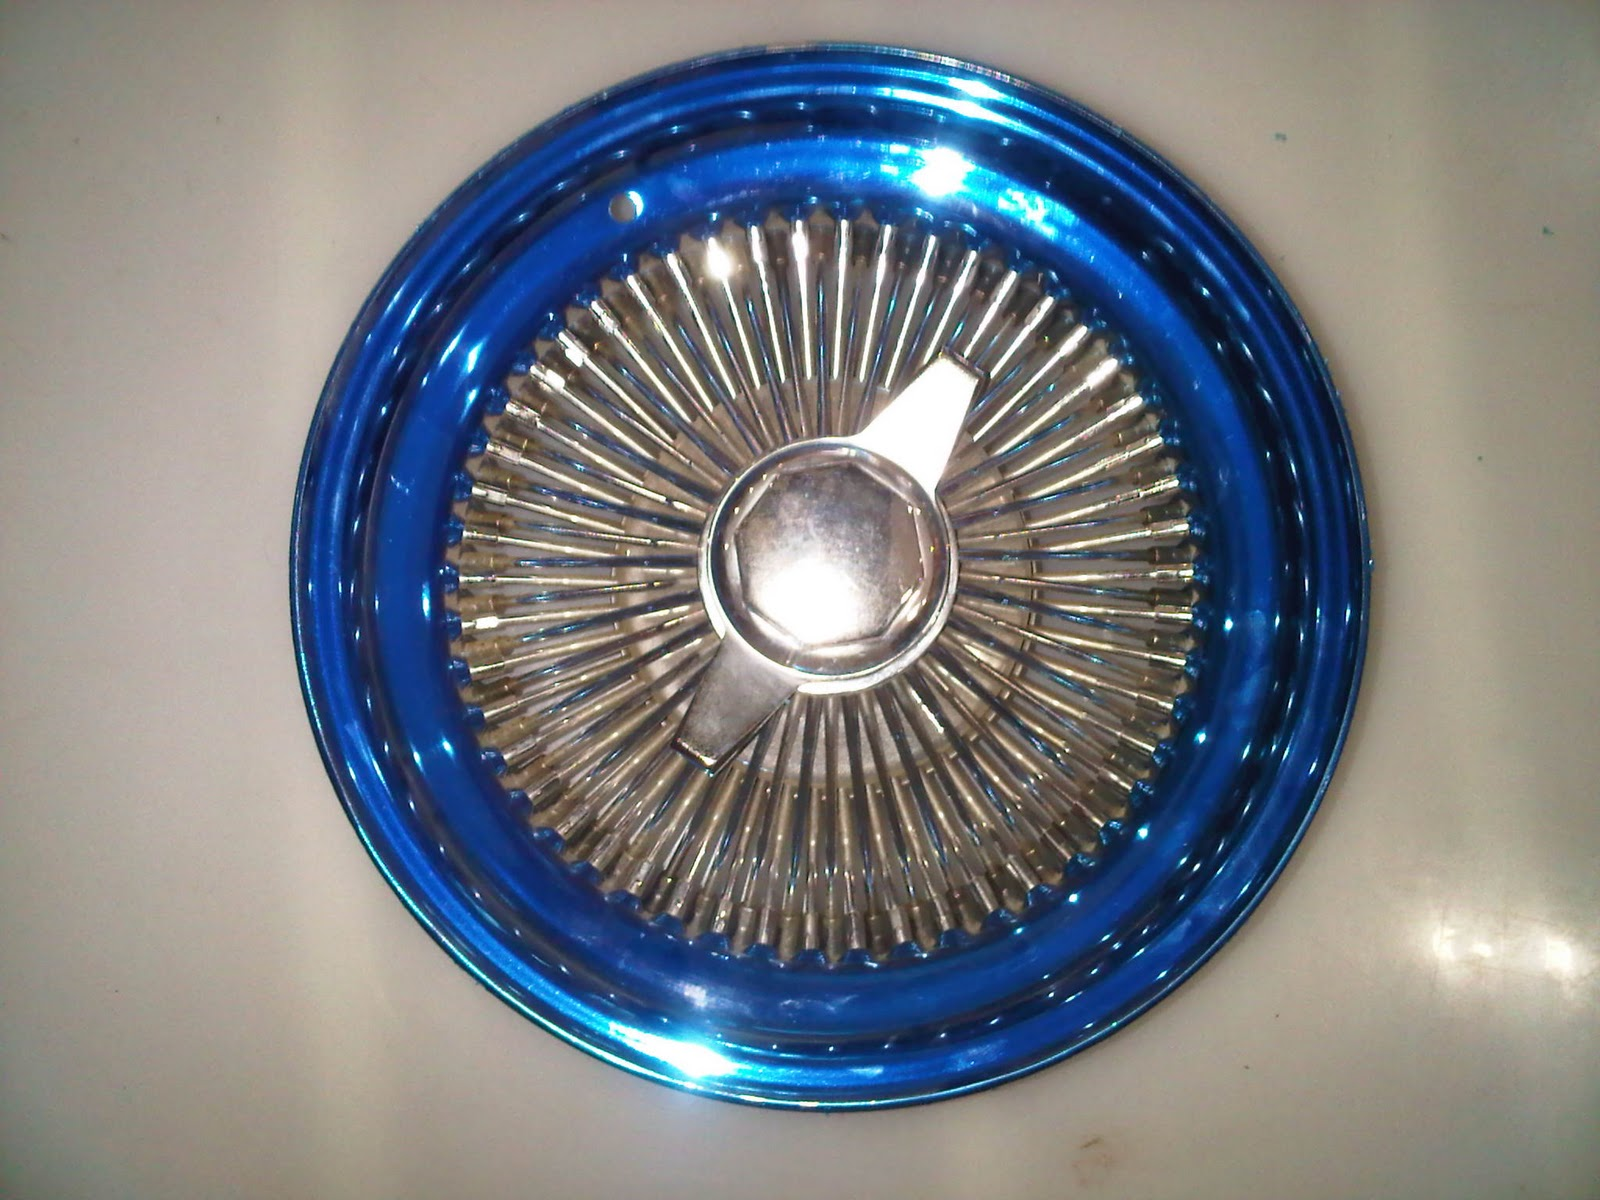 upku lowayu jaya for sale velg jari2 ring 15x7 as tengah